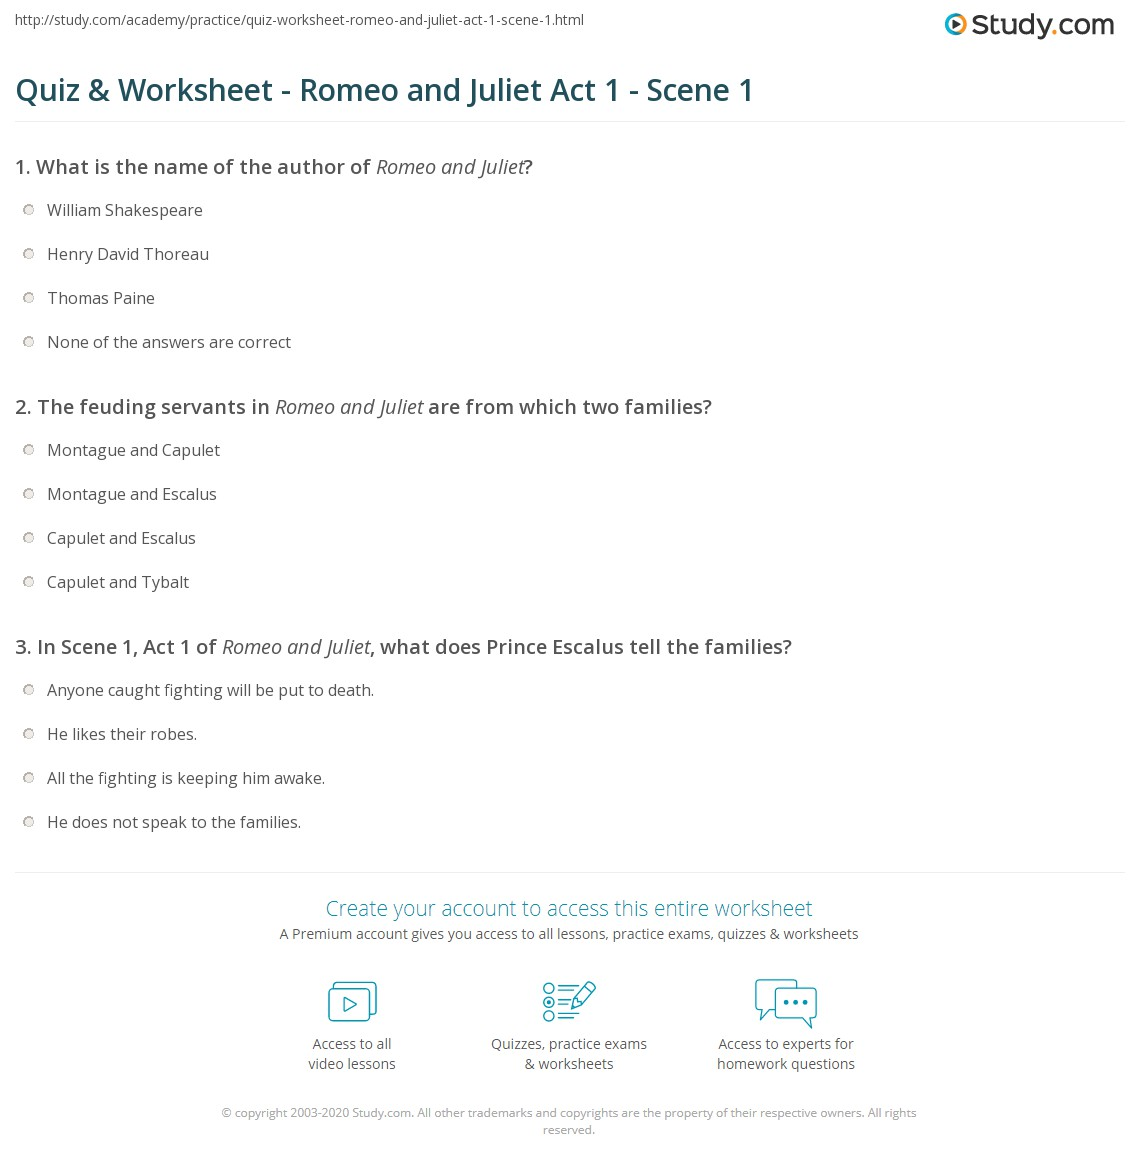 quiz worksheet romeo and juliet act 1 scene 1. Black Bedroom Furniture Sets. Home Design Ideas